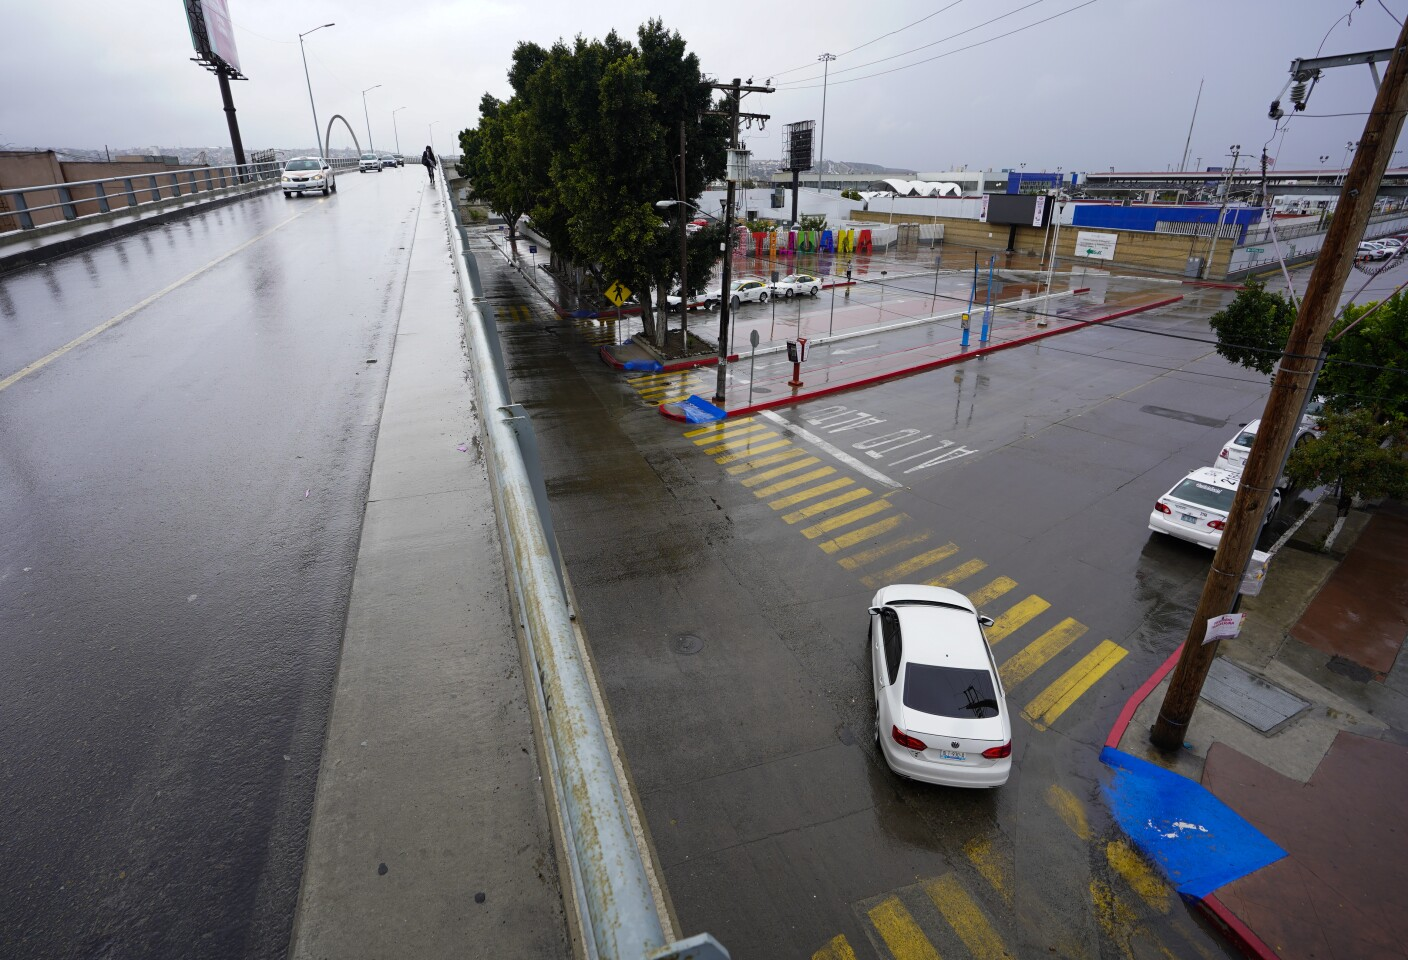 Tijuana, Baja California, Mexico April 7th, 2020 | Closed because of coronavirus restrictions, the now-empty square in front of the El Chaparral border crossing is abandoned. | (Alejandro Tamayo, The San Diego Union Tribune 2020)